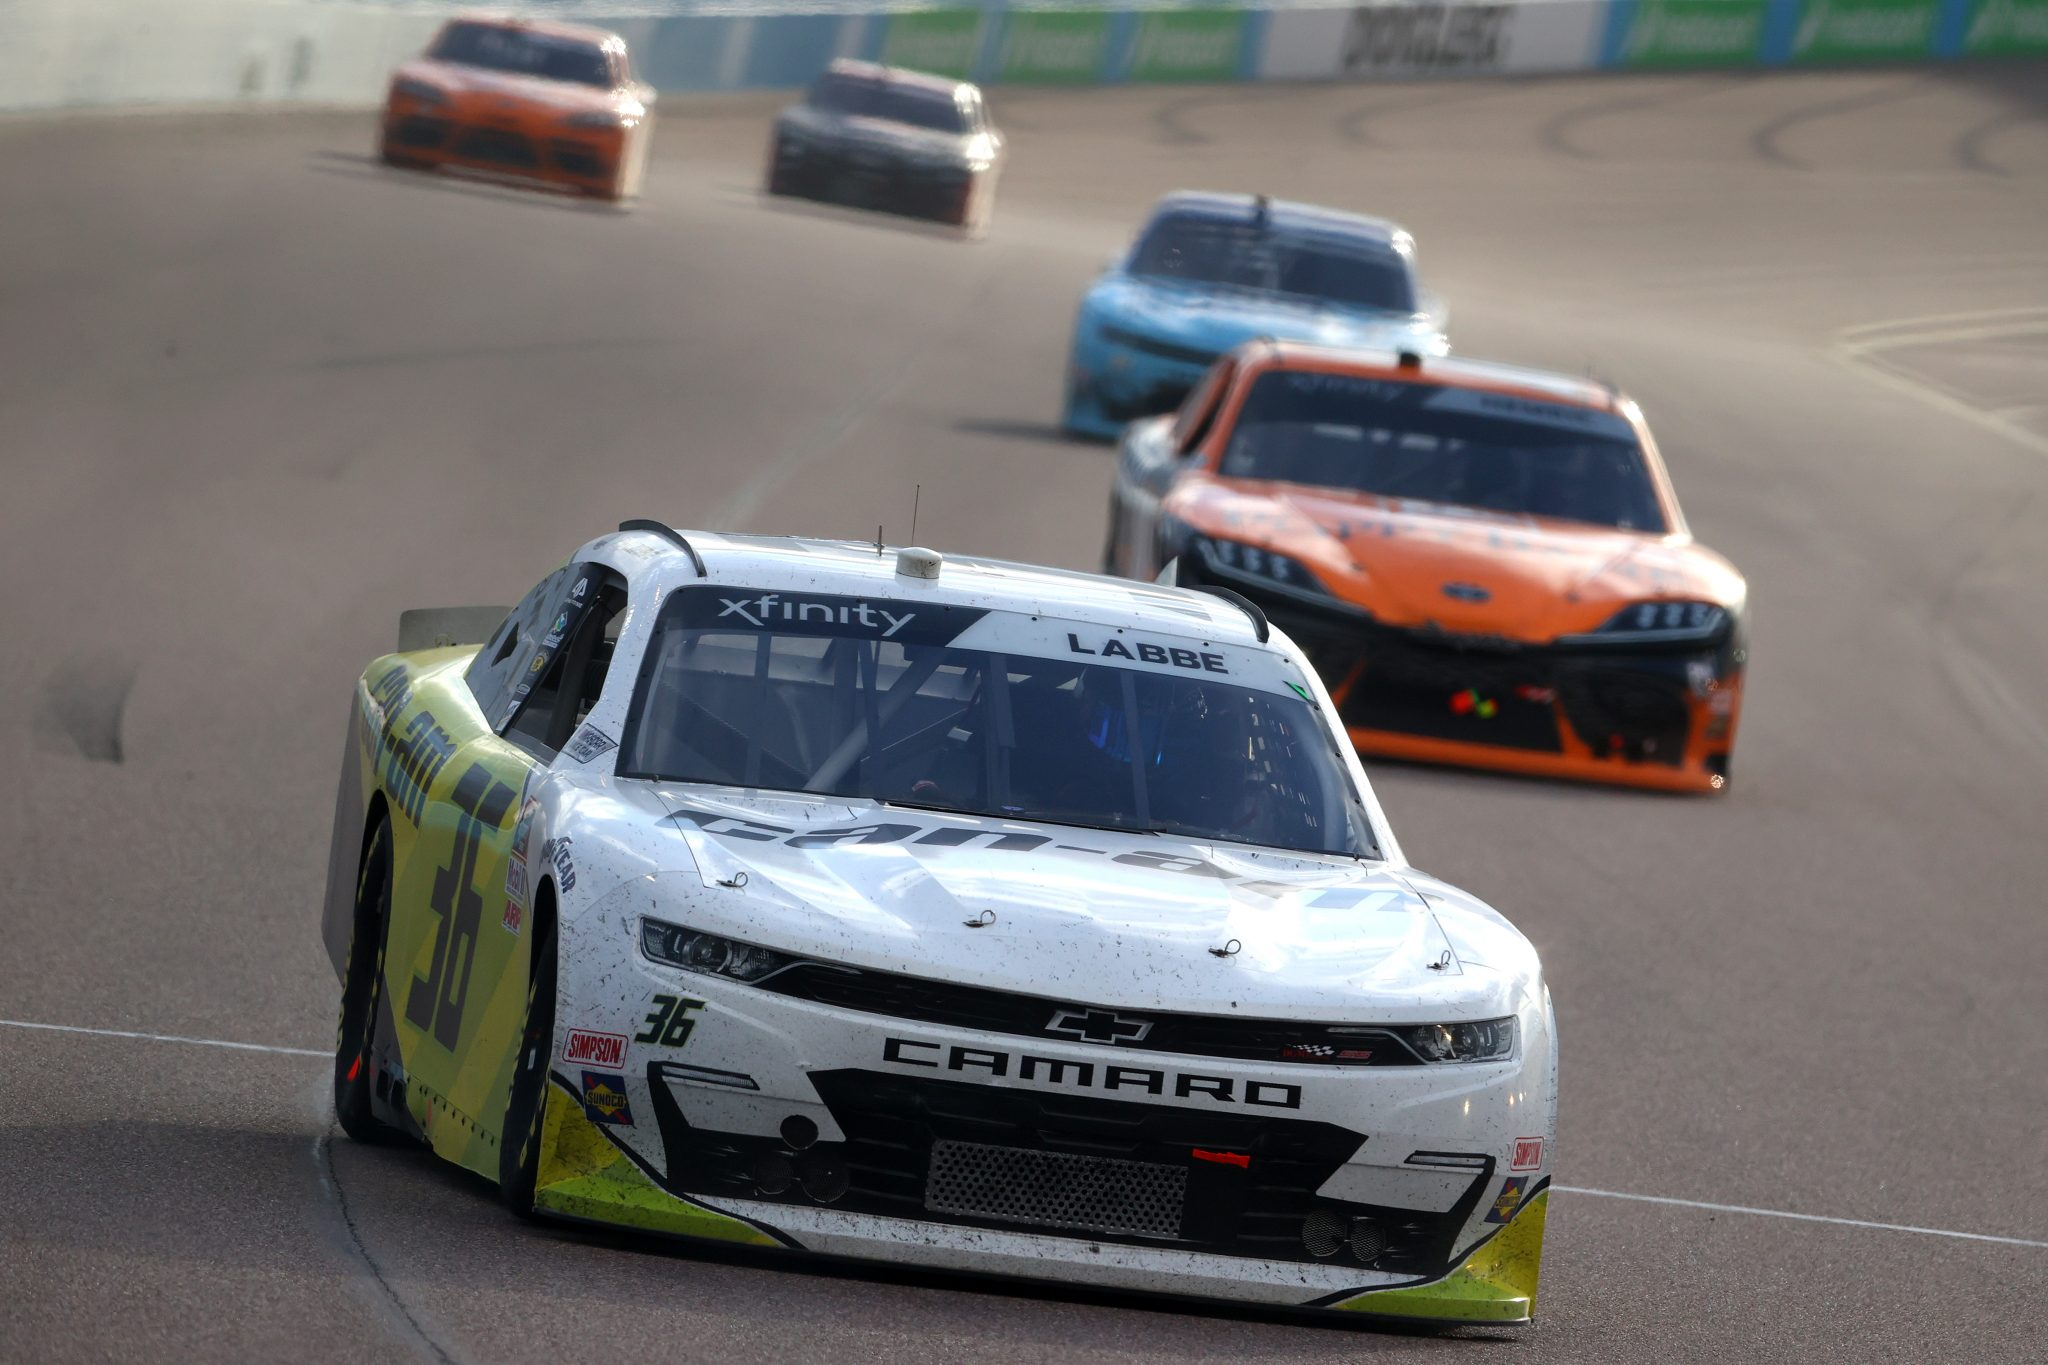 AVONDALE, ARIZONA - MARCH 13: Alex Labbe, driver of the #36 Can-Am Chevrolet, drives during the NASCAR Xfinity Series Call 811 Before You Dig 200 presented by Arizona 811 at Phoenix Raceway on March 13, 2021 in Avondale, Arizona. (Photo by Abbie Parr/Getty Images) | Getty Images